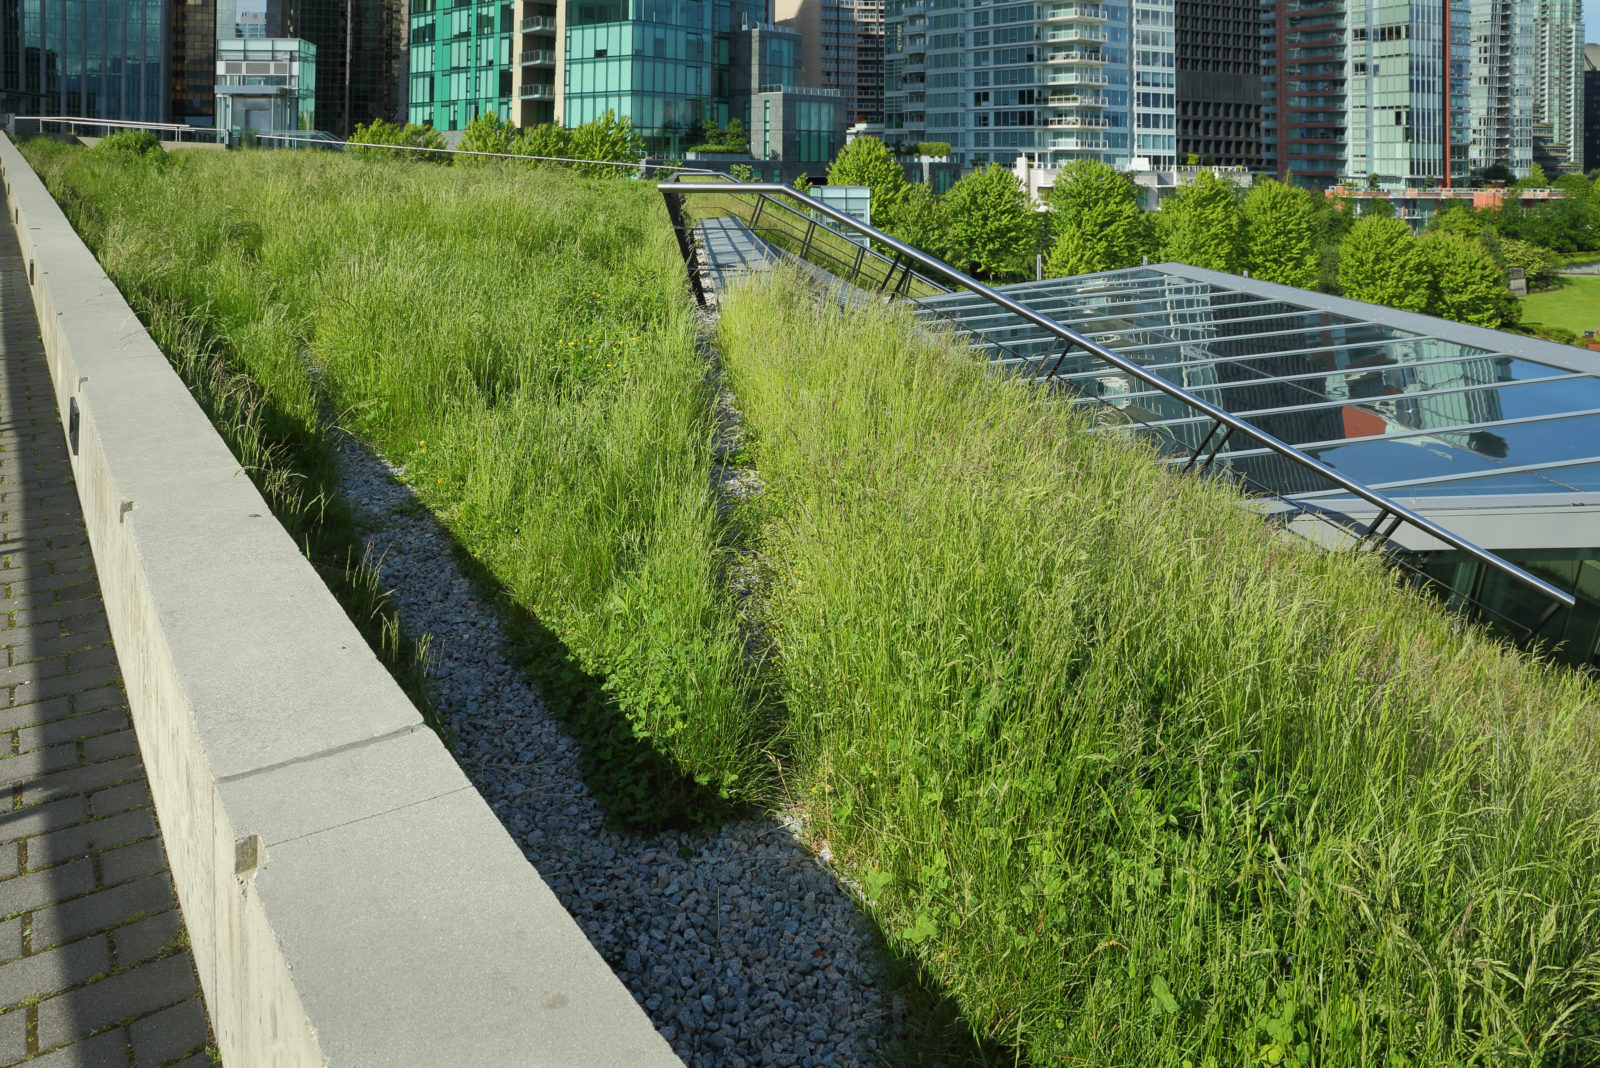 A portion of the new Vancouver Convention Center environmentally friendly, lush, 6 acre green roof.